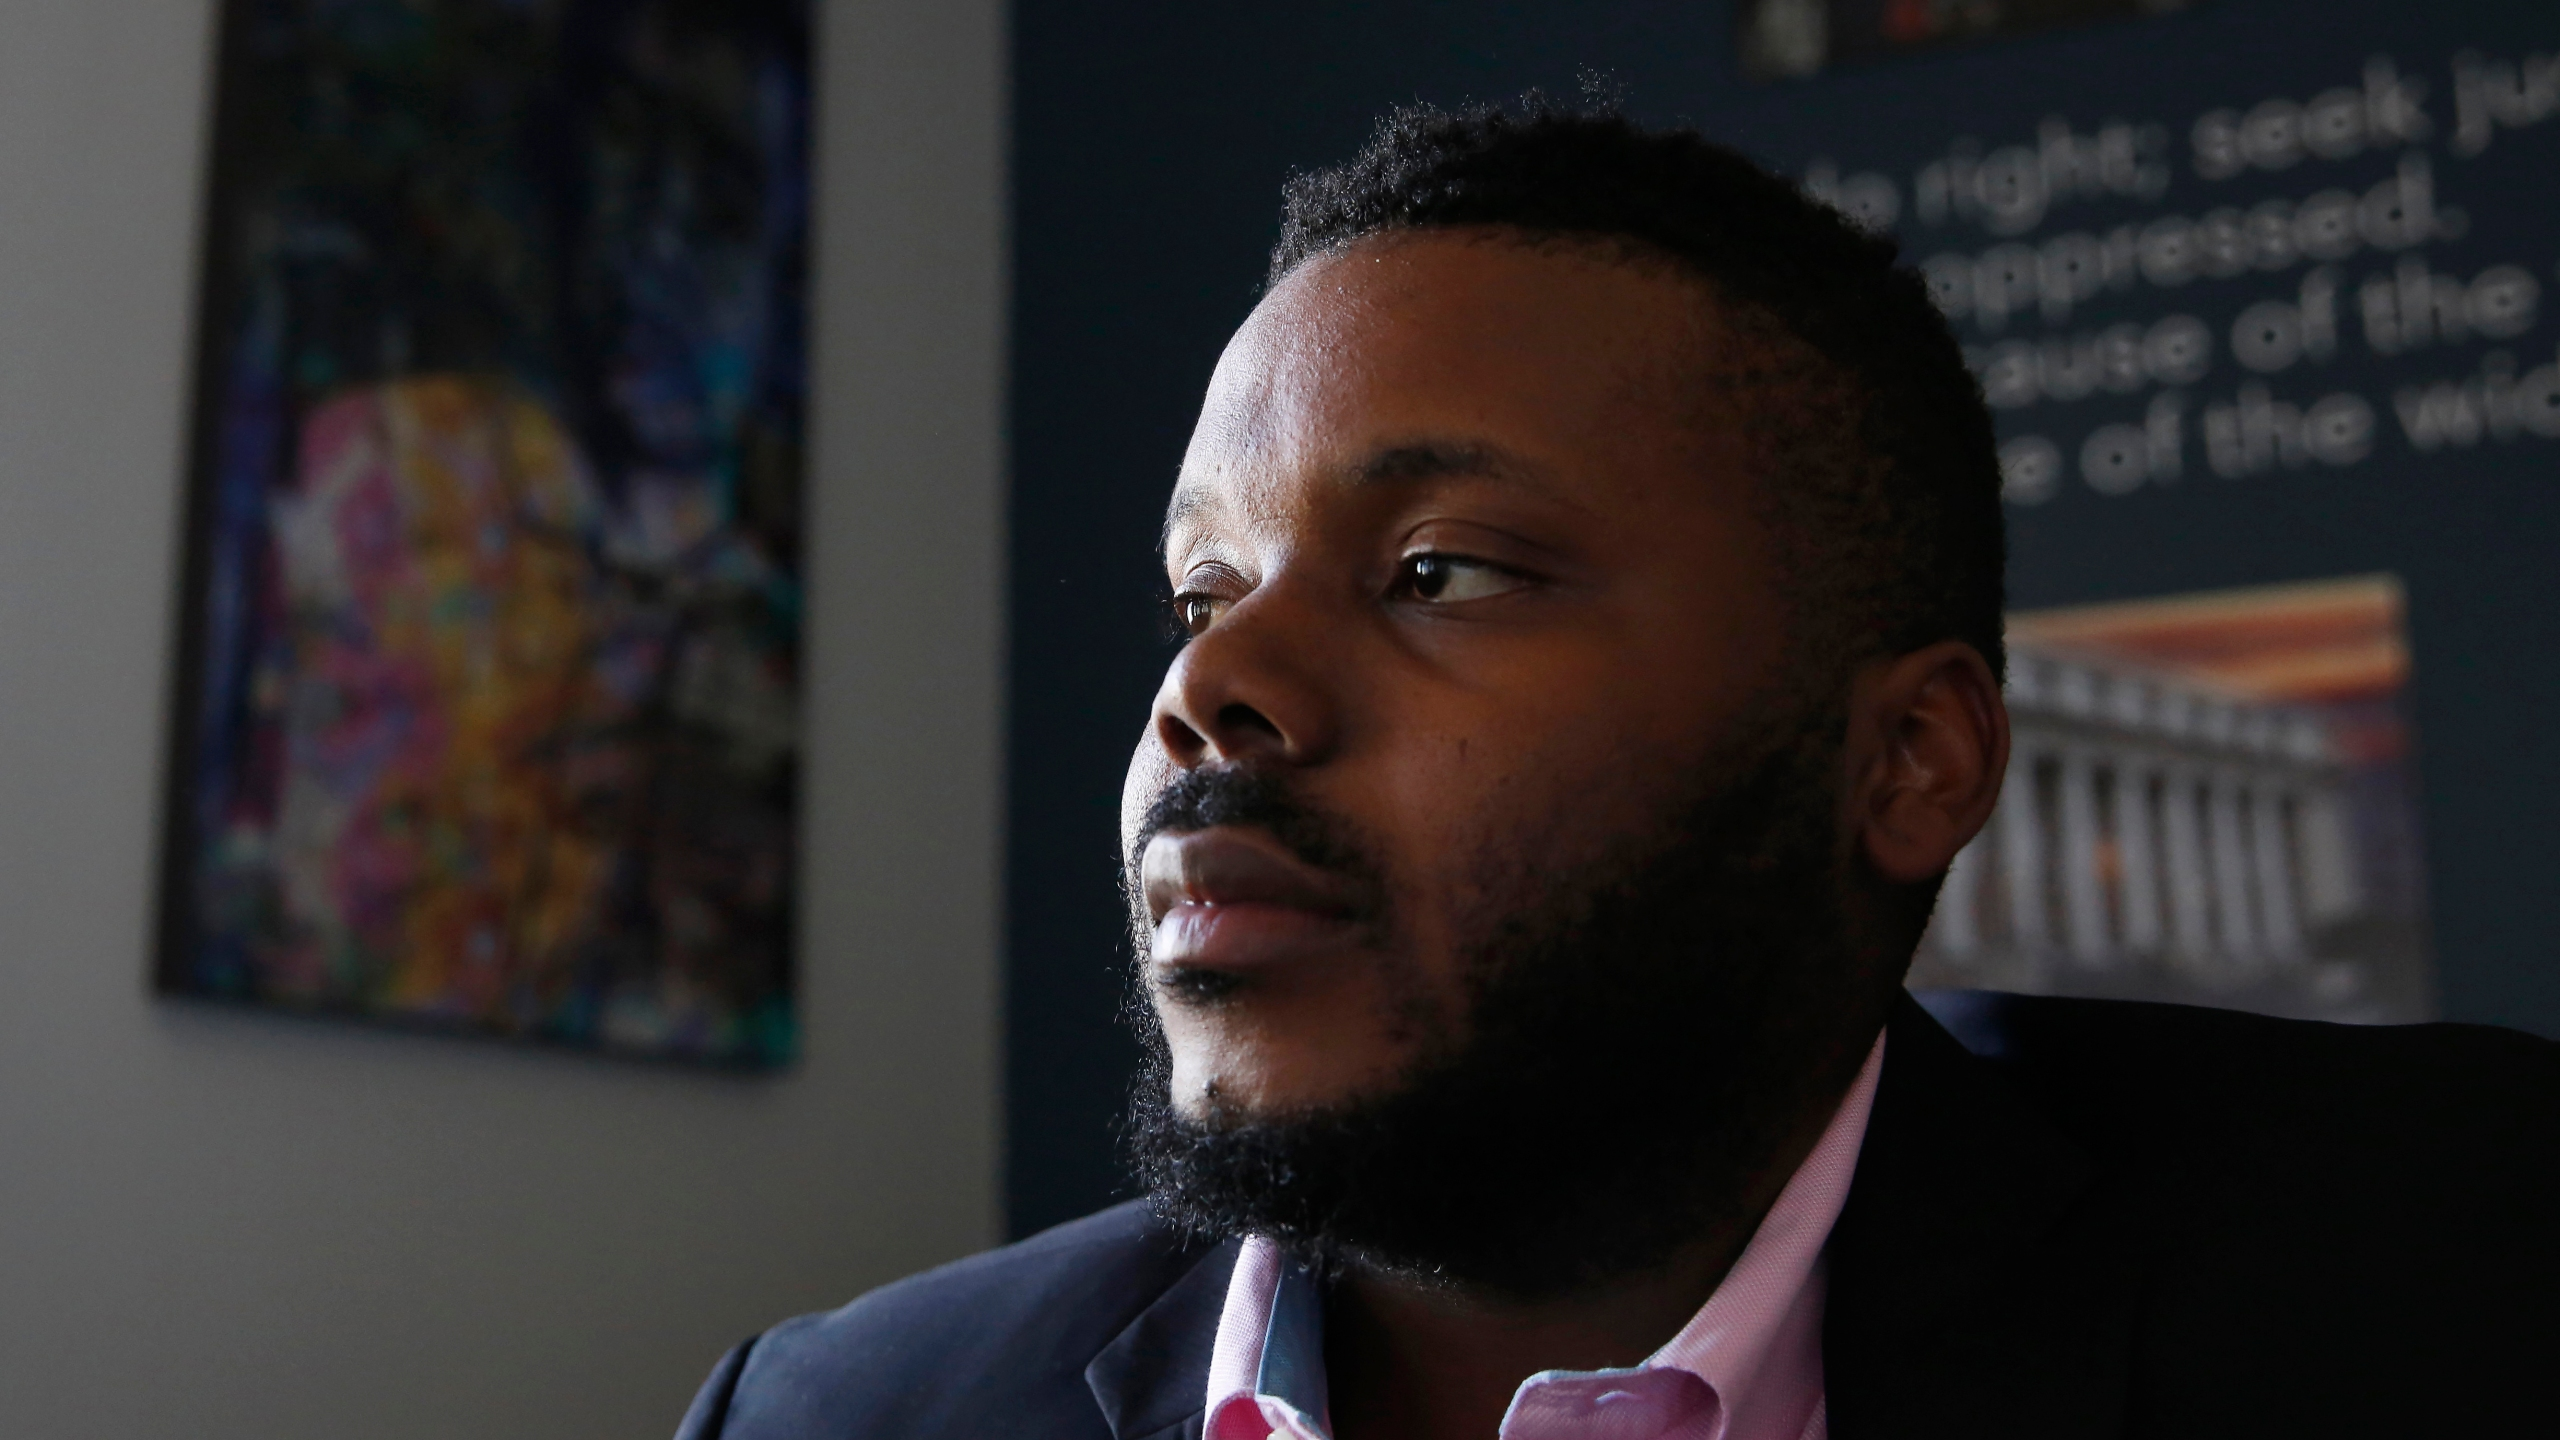 In this Aug. 14, 2019, file photo, Stockton Mayor Michael Tubbs talks during an interview in Stockton, Calif. Tubbs is one of the youngest mayors in the country and was the city's first Black mayor. He garnered national attention with his universal basic income program that fights poverty by paying people $500 a month. But despite winning 70% of the vote, Tubbs is trailing a Republican challenger, putting him in danger of losing his seat. (AP Photo/Rich Pedroncelli, File)